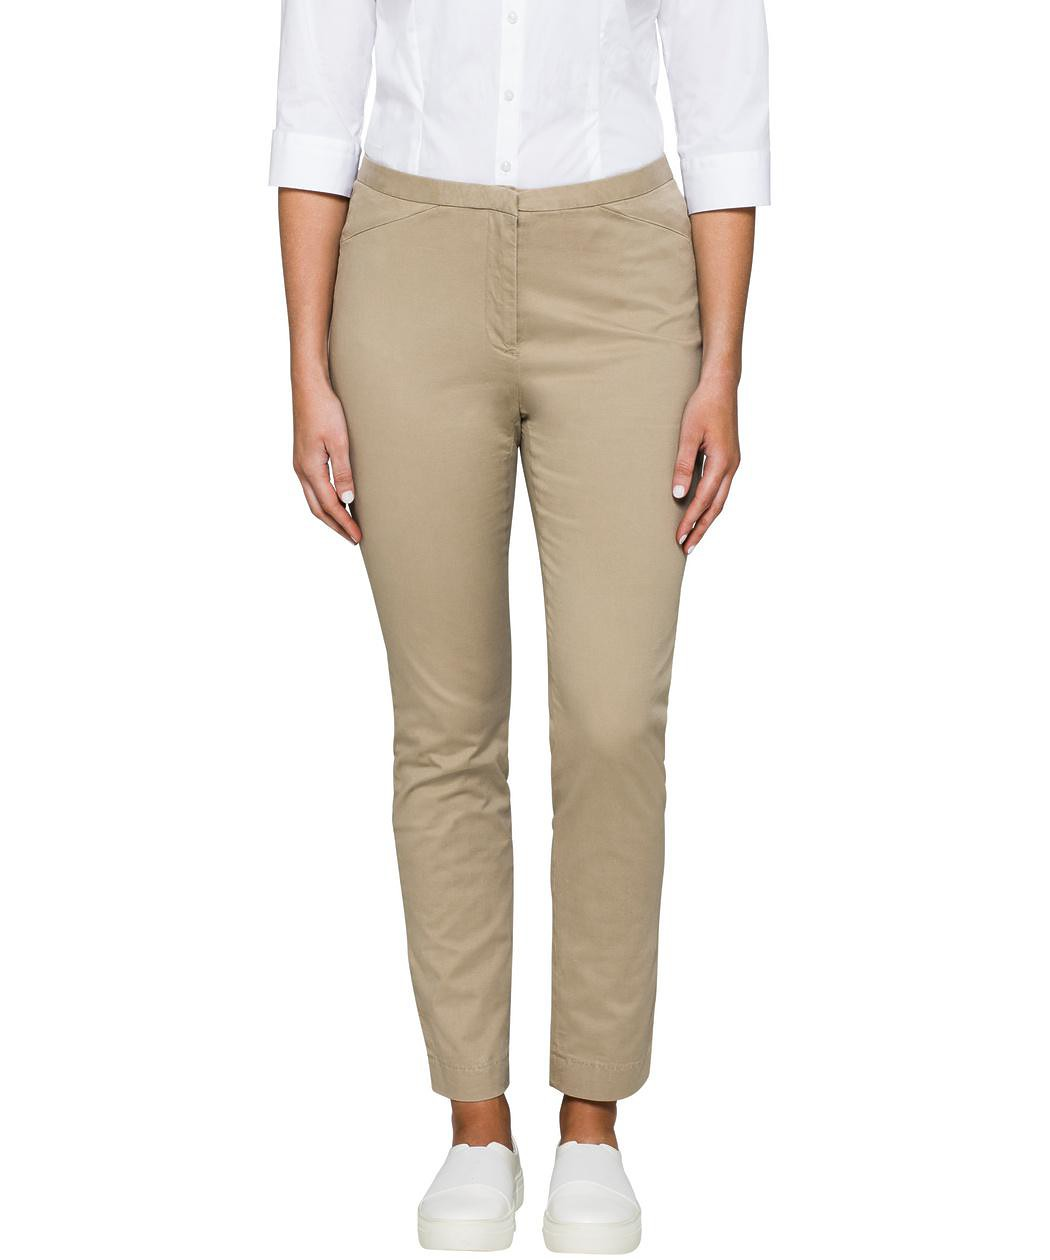 Womens Chinos Perfect for work or play, a great pair of women's chinos can be dressed up - or down! And with dozens of quality options, EziBuy has a huge range of women's chino pants available online!